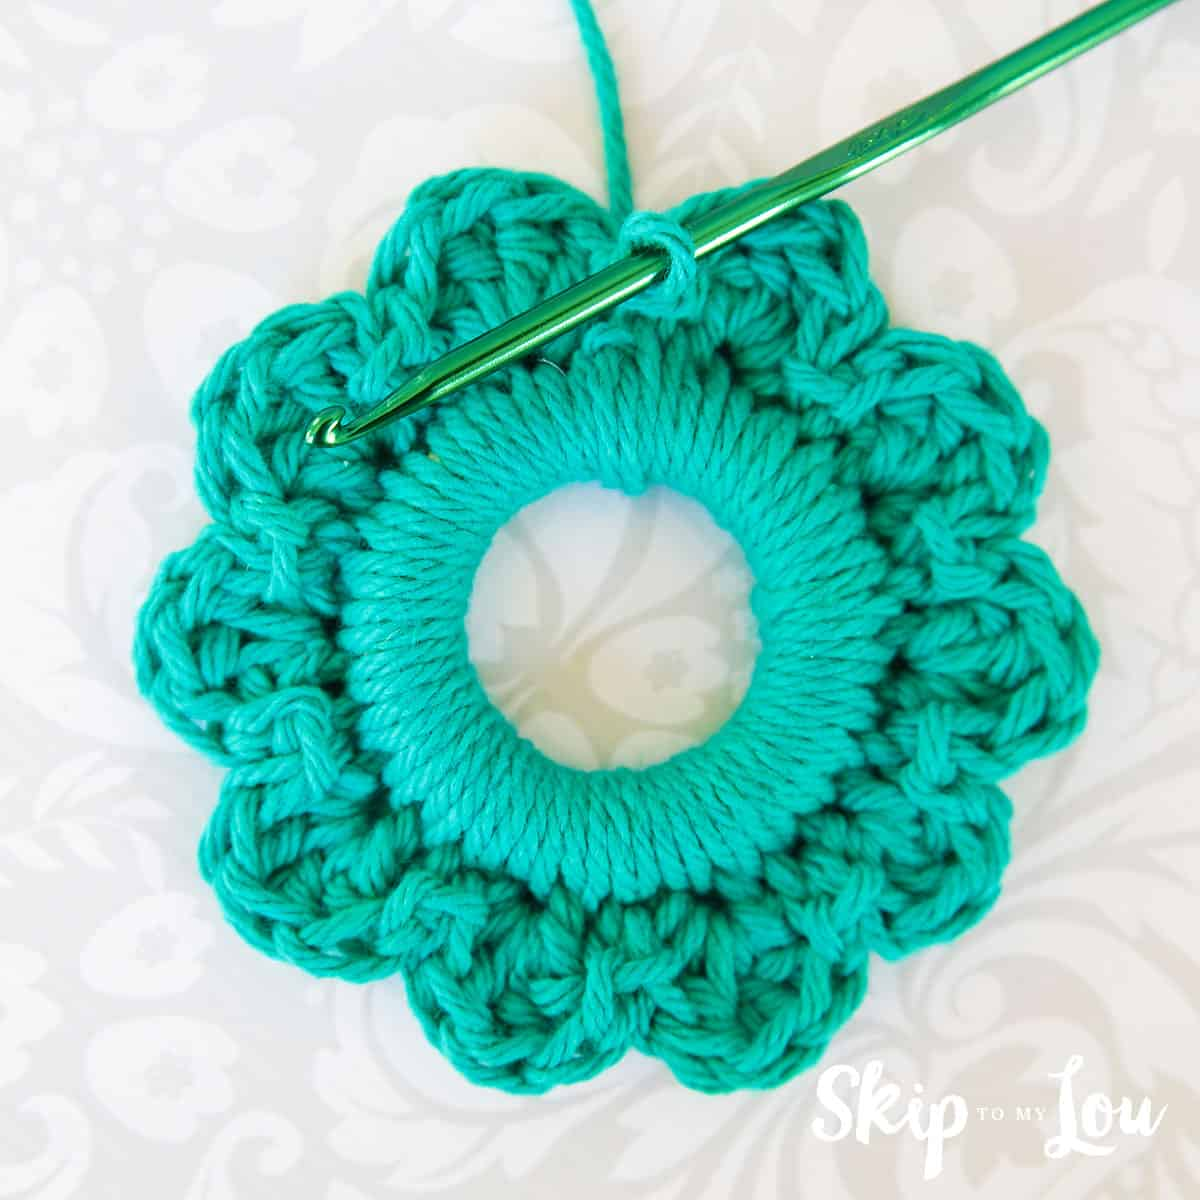 crochet-wreath-pattern-9